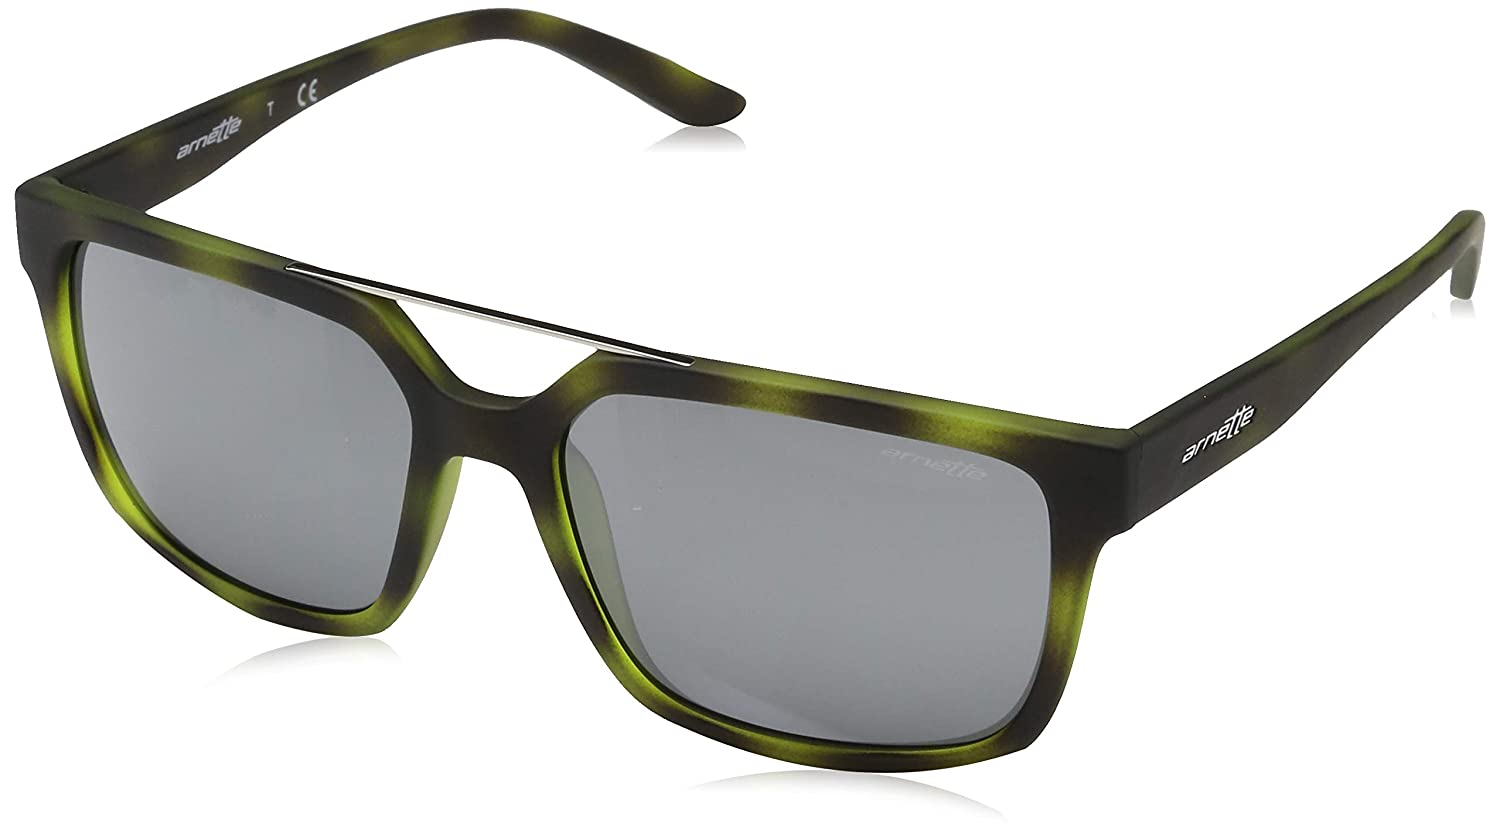 Arnette Men's Mirrored AN4231-24286G-57 Green Square Sunglasses   B01LZEUS06